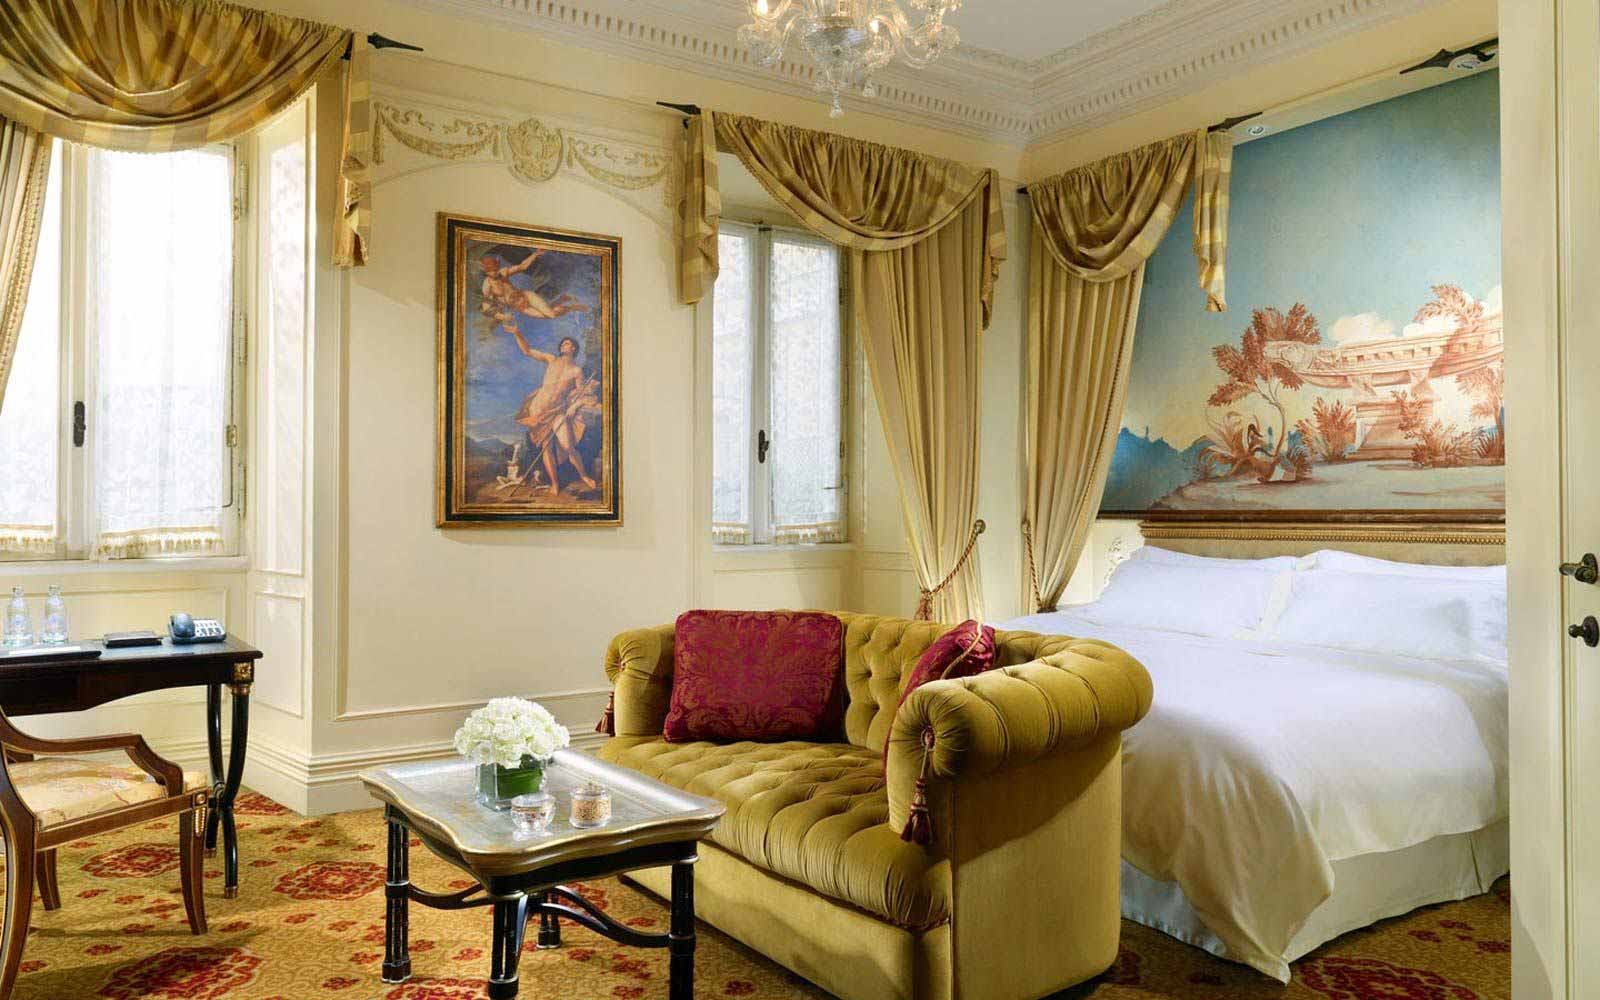 Deluxe room at St.Regis Grand Hotel